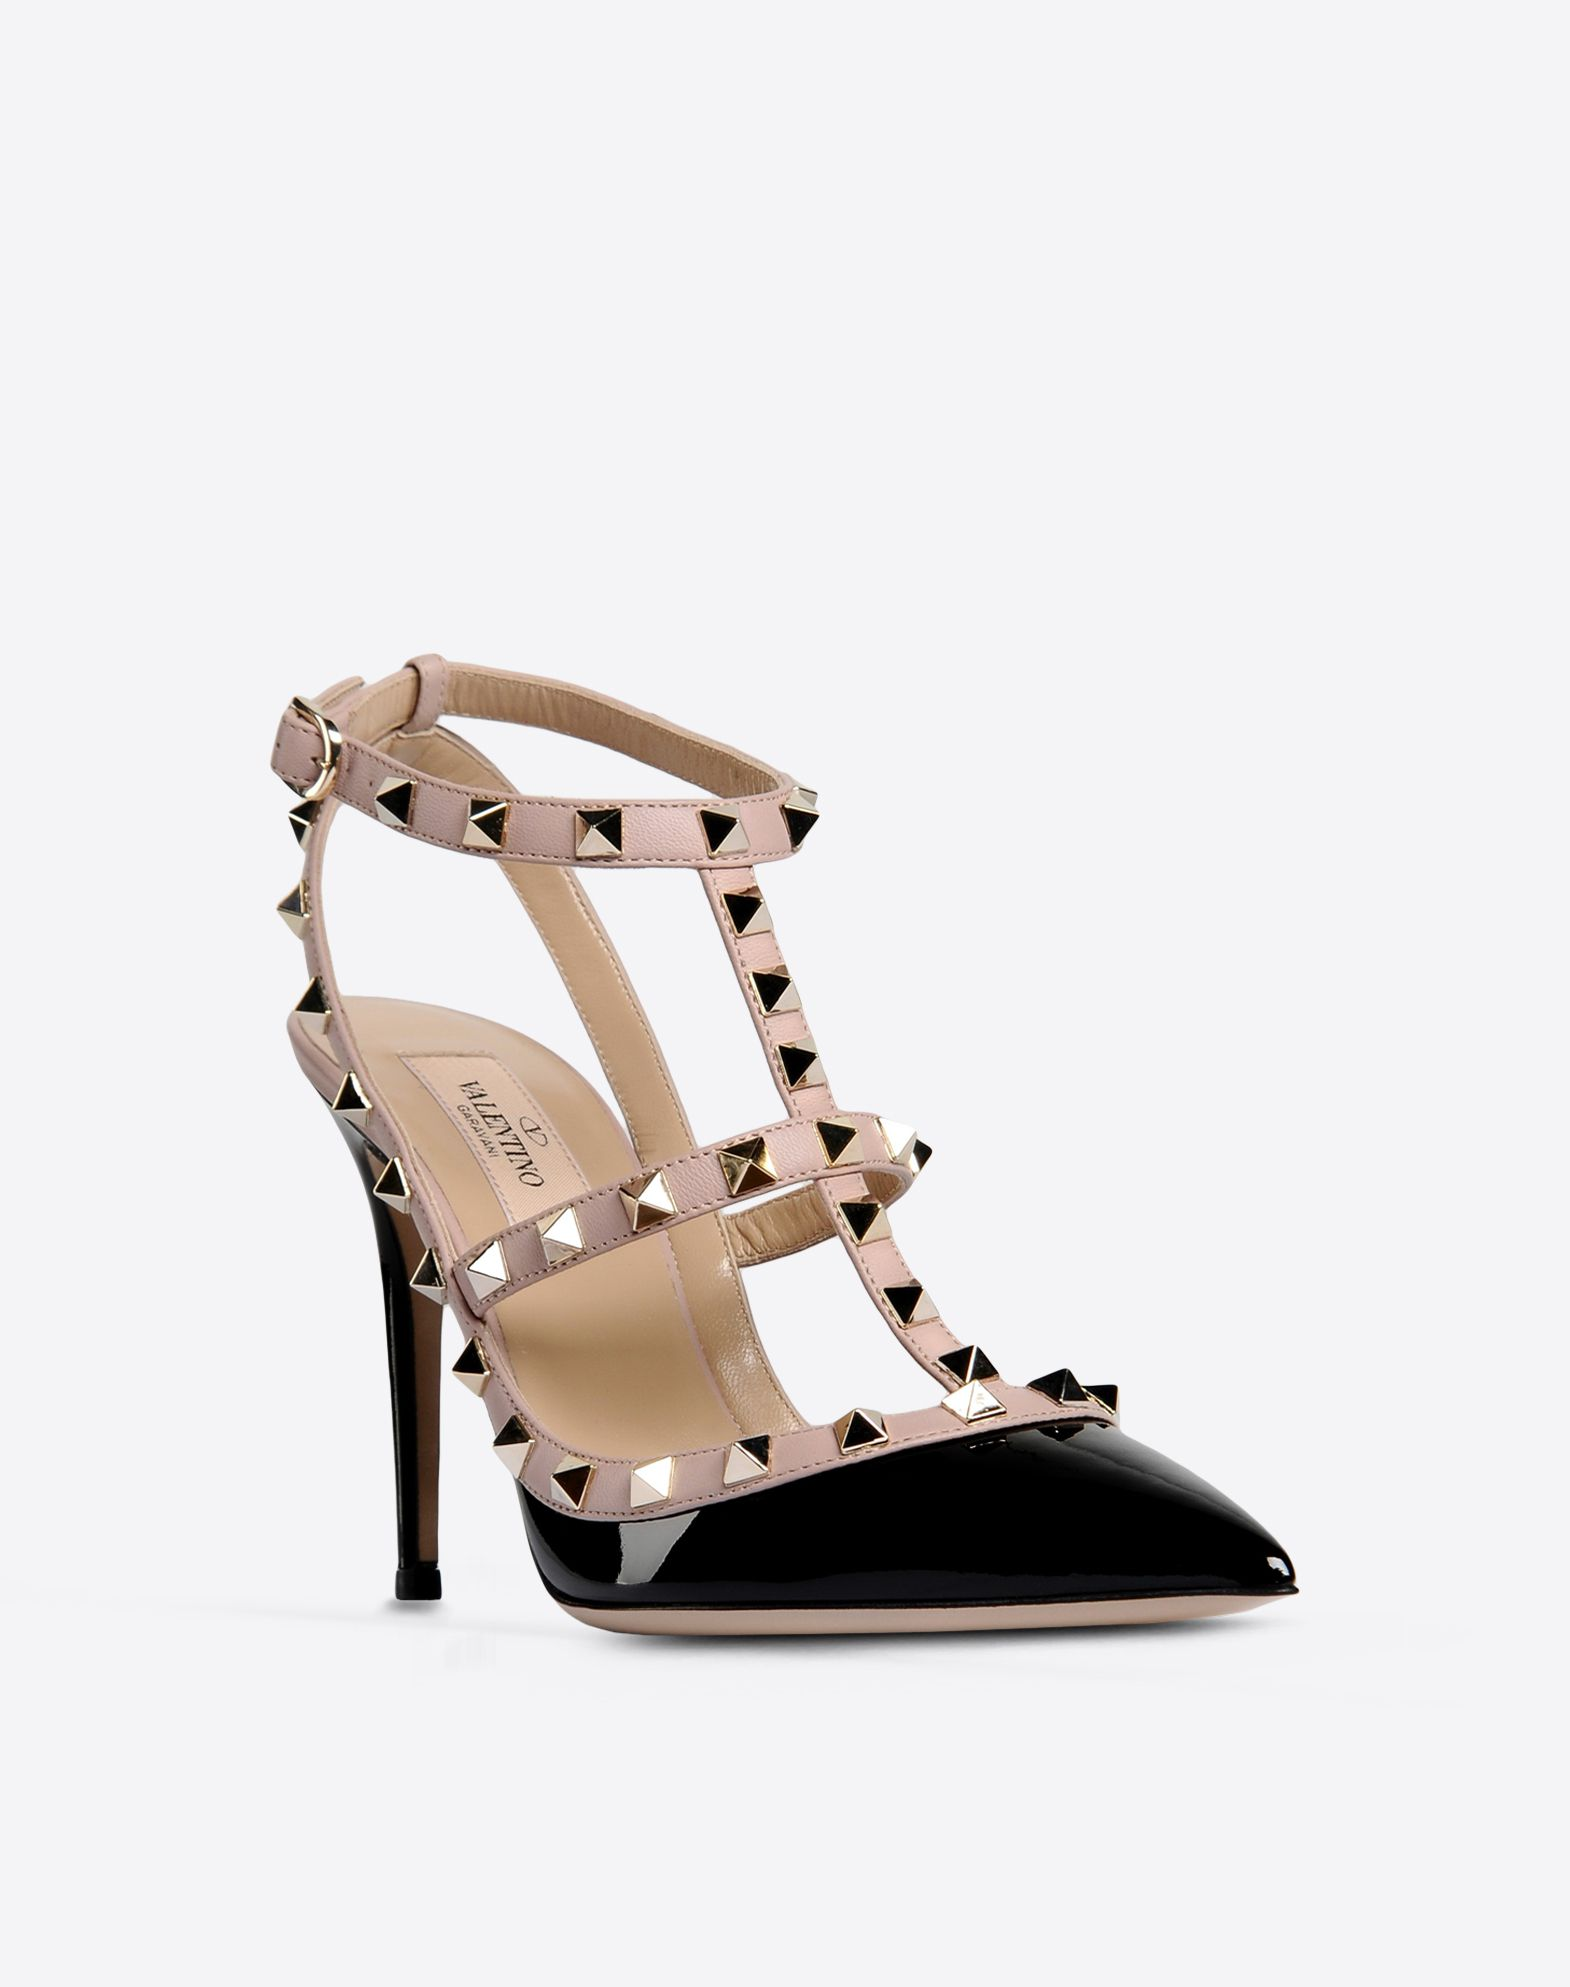 VALENTINO Varnished effect Two-tone pattern Buckling ankle strap closure Leather sole Narrow toeline Spike heel Metallic inserts  44572366wg